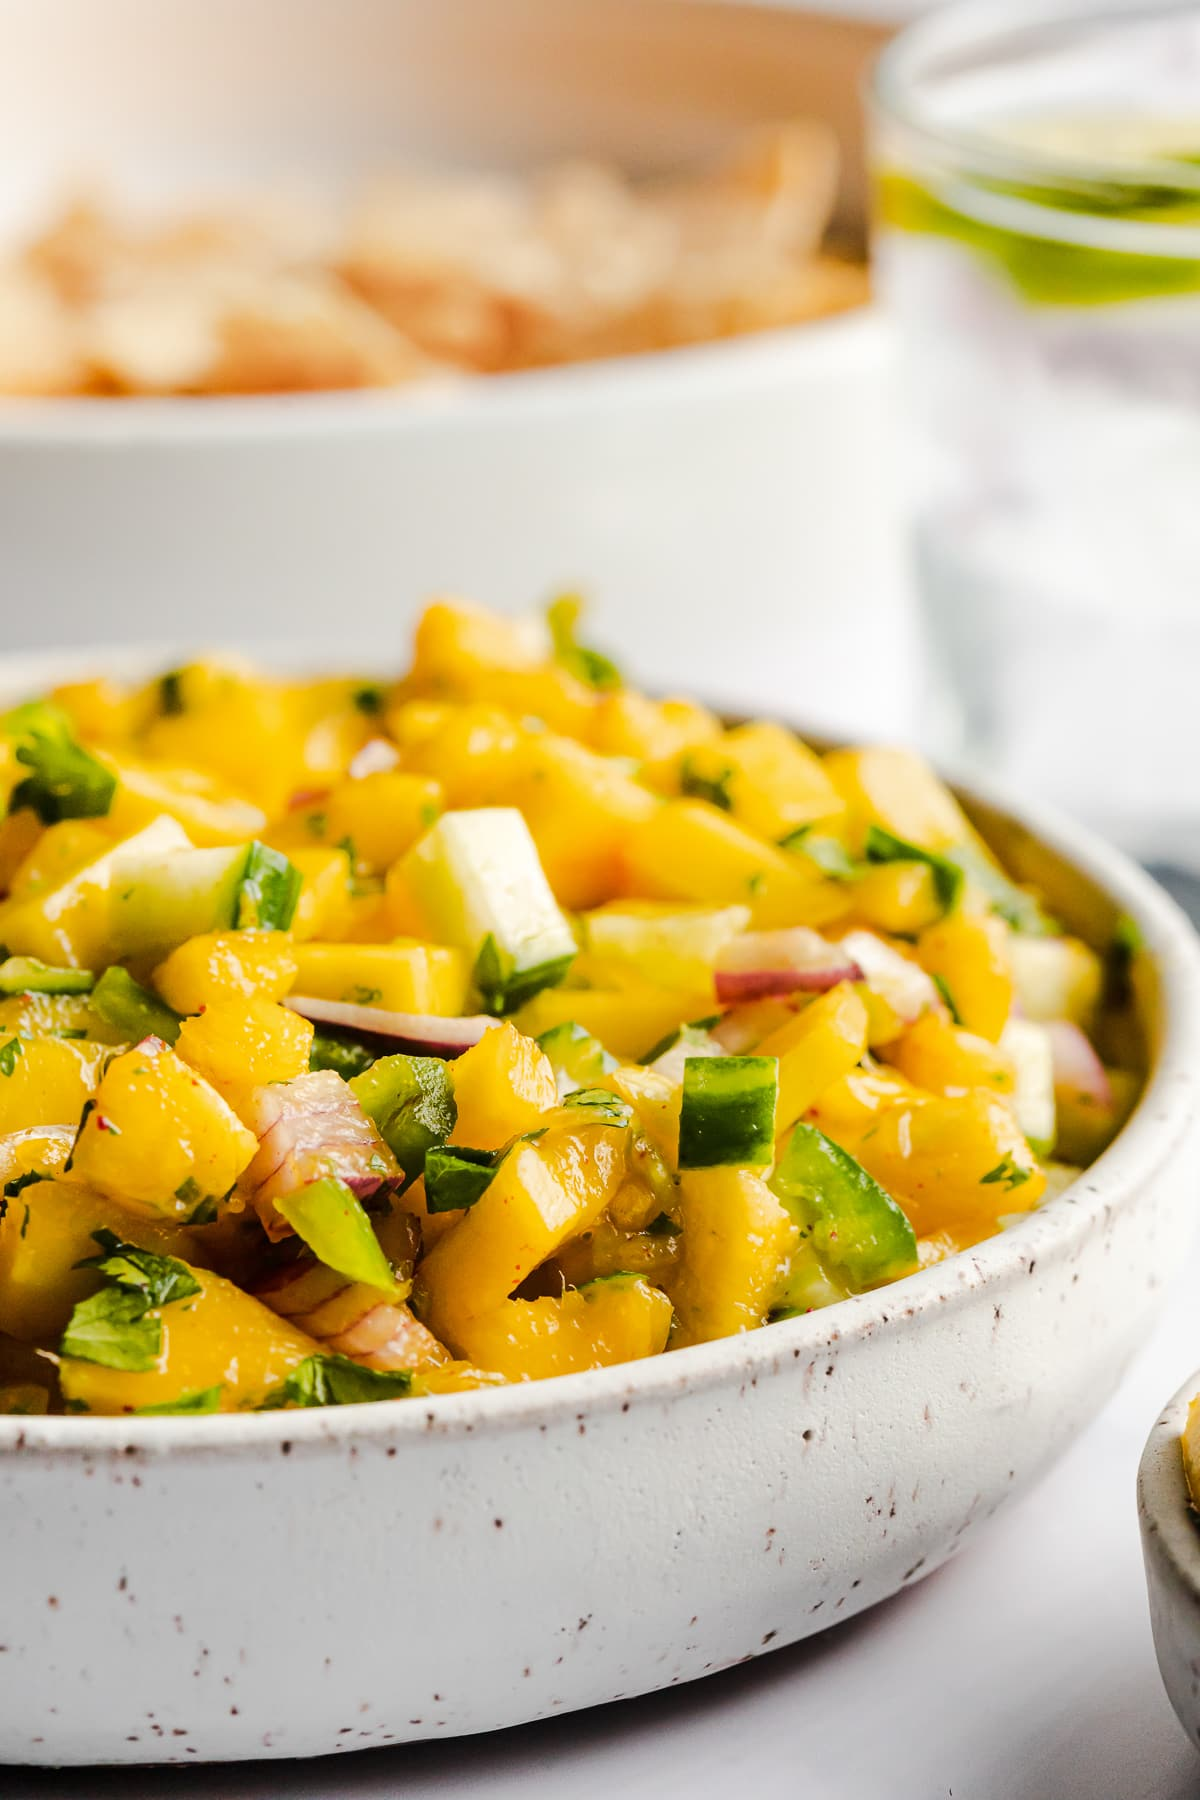 Mango salsa topped with chopped cilantro ready to be served.